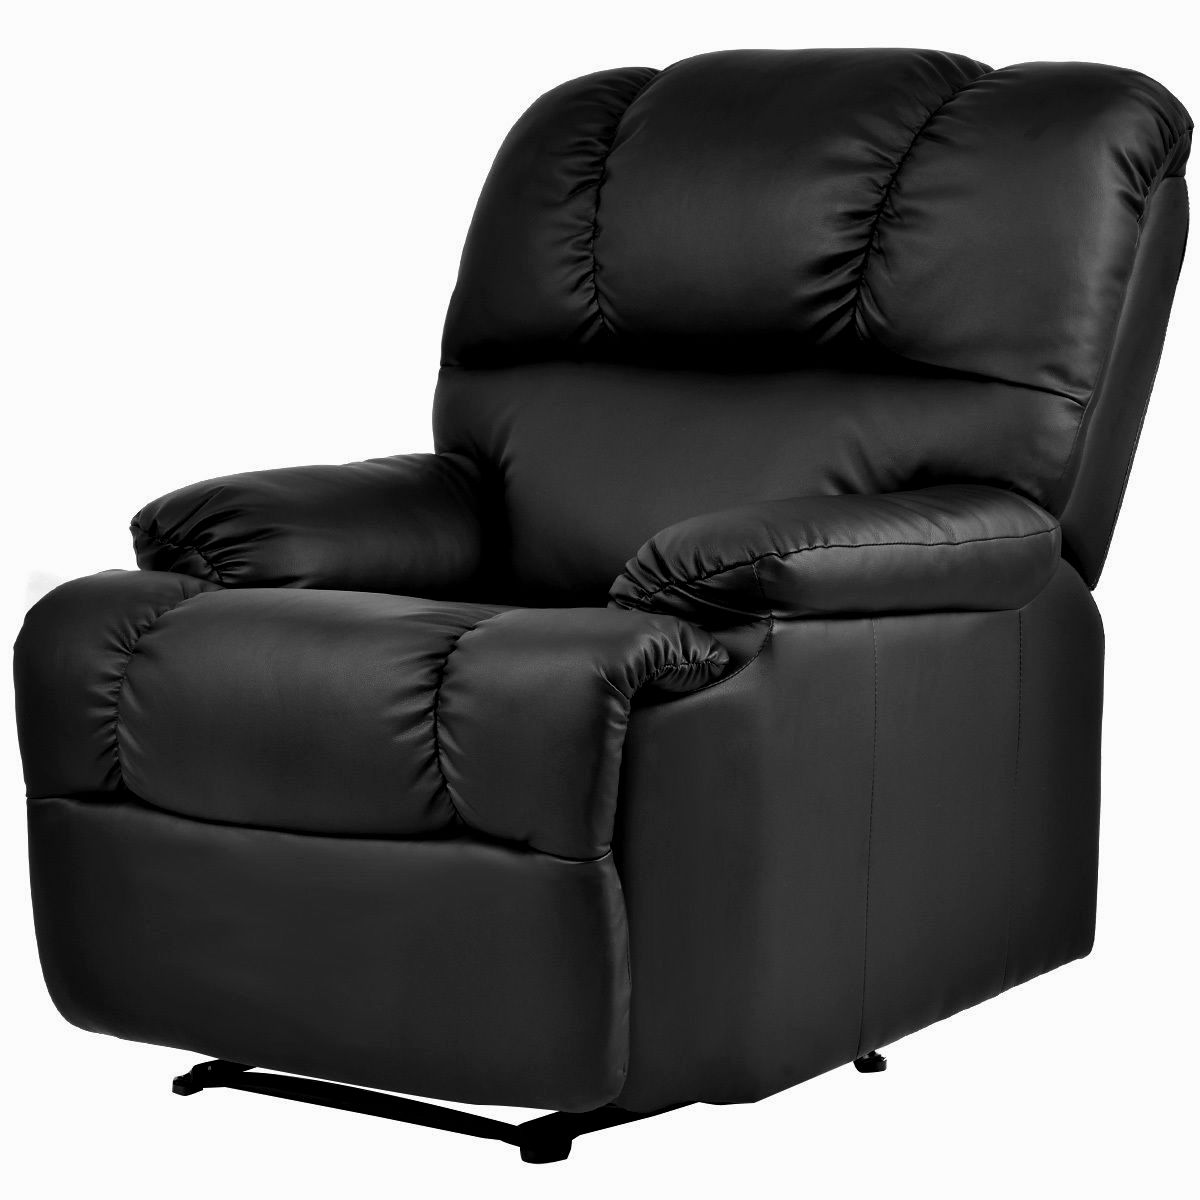 finest recliner sofa chair design-Terrific Recliner sofa Chair Design